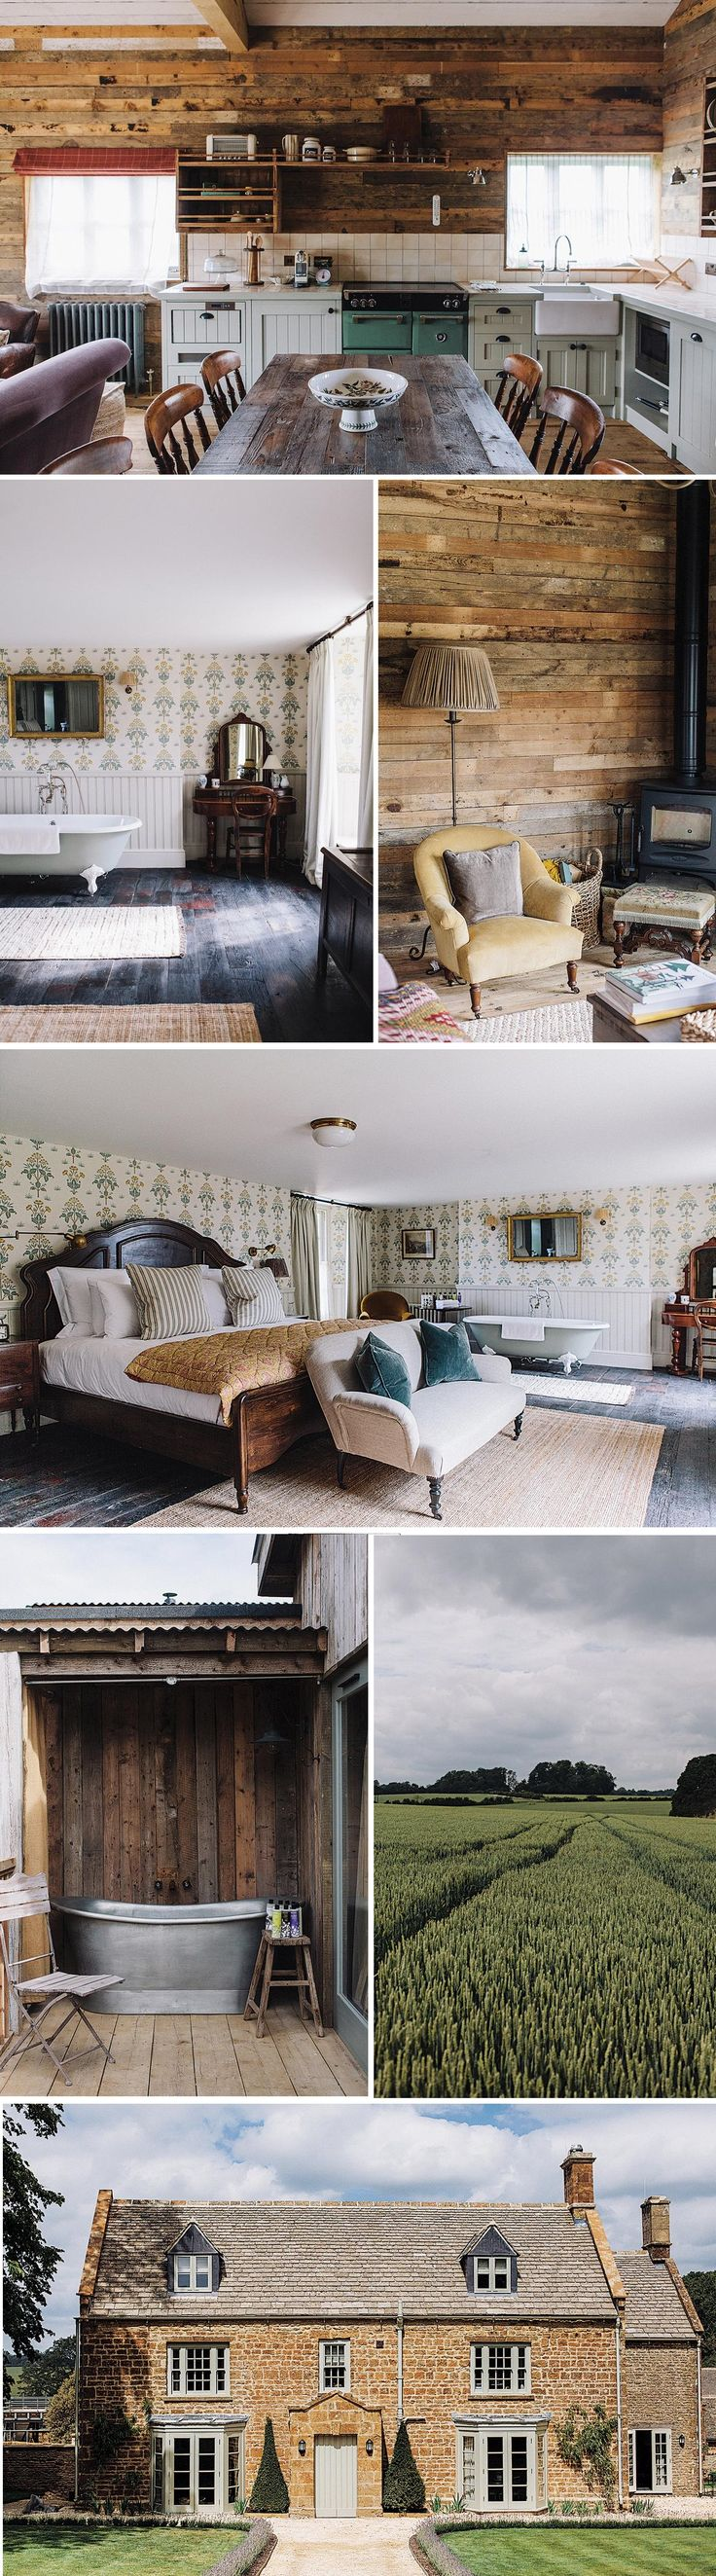 top 25+ best soho farmhouse ideas on pinterest | soho house